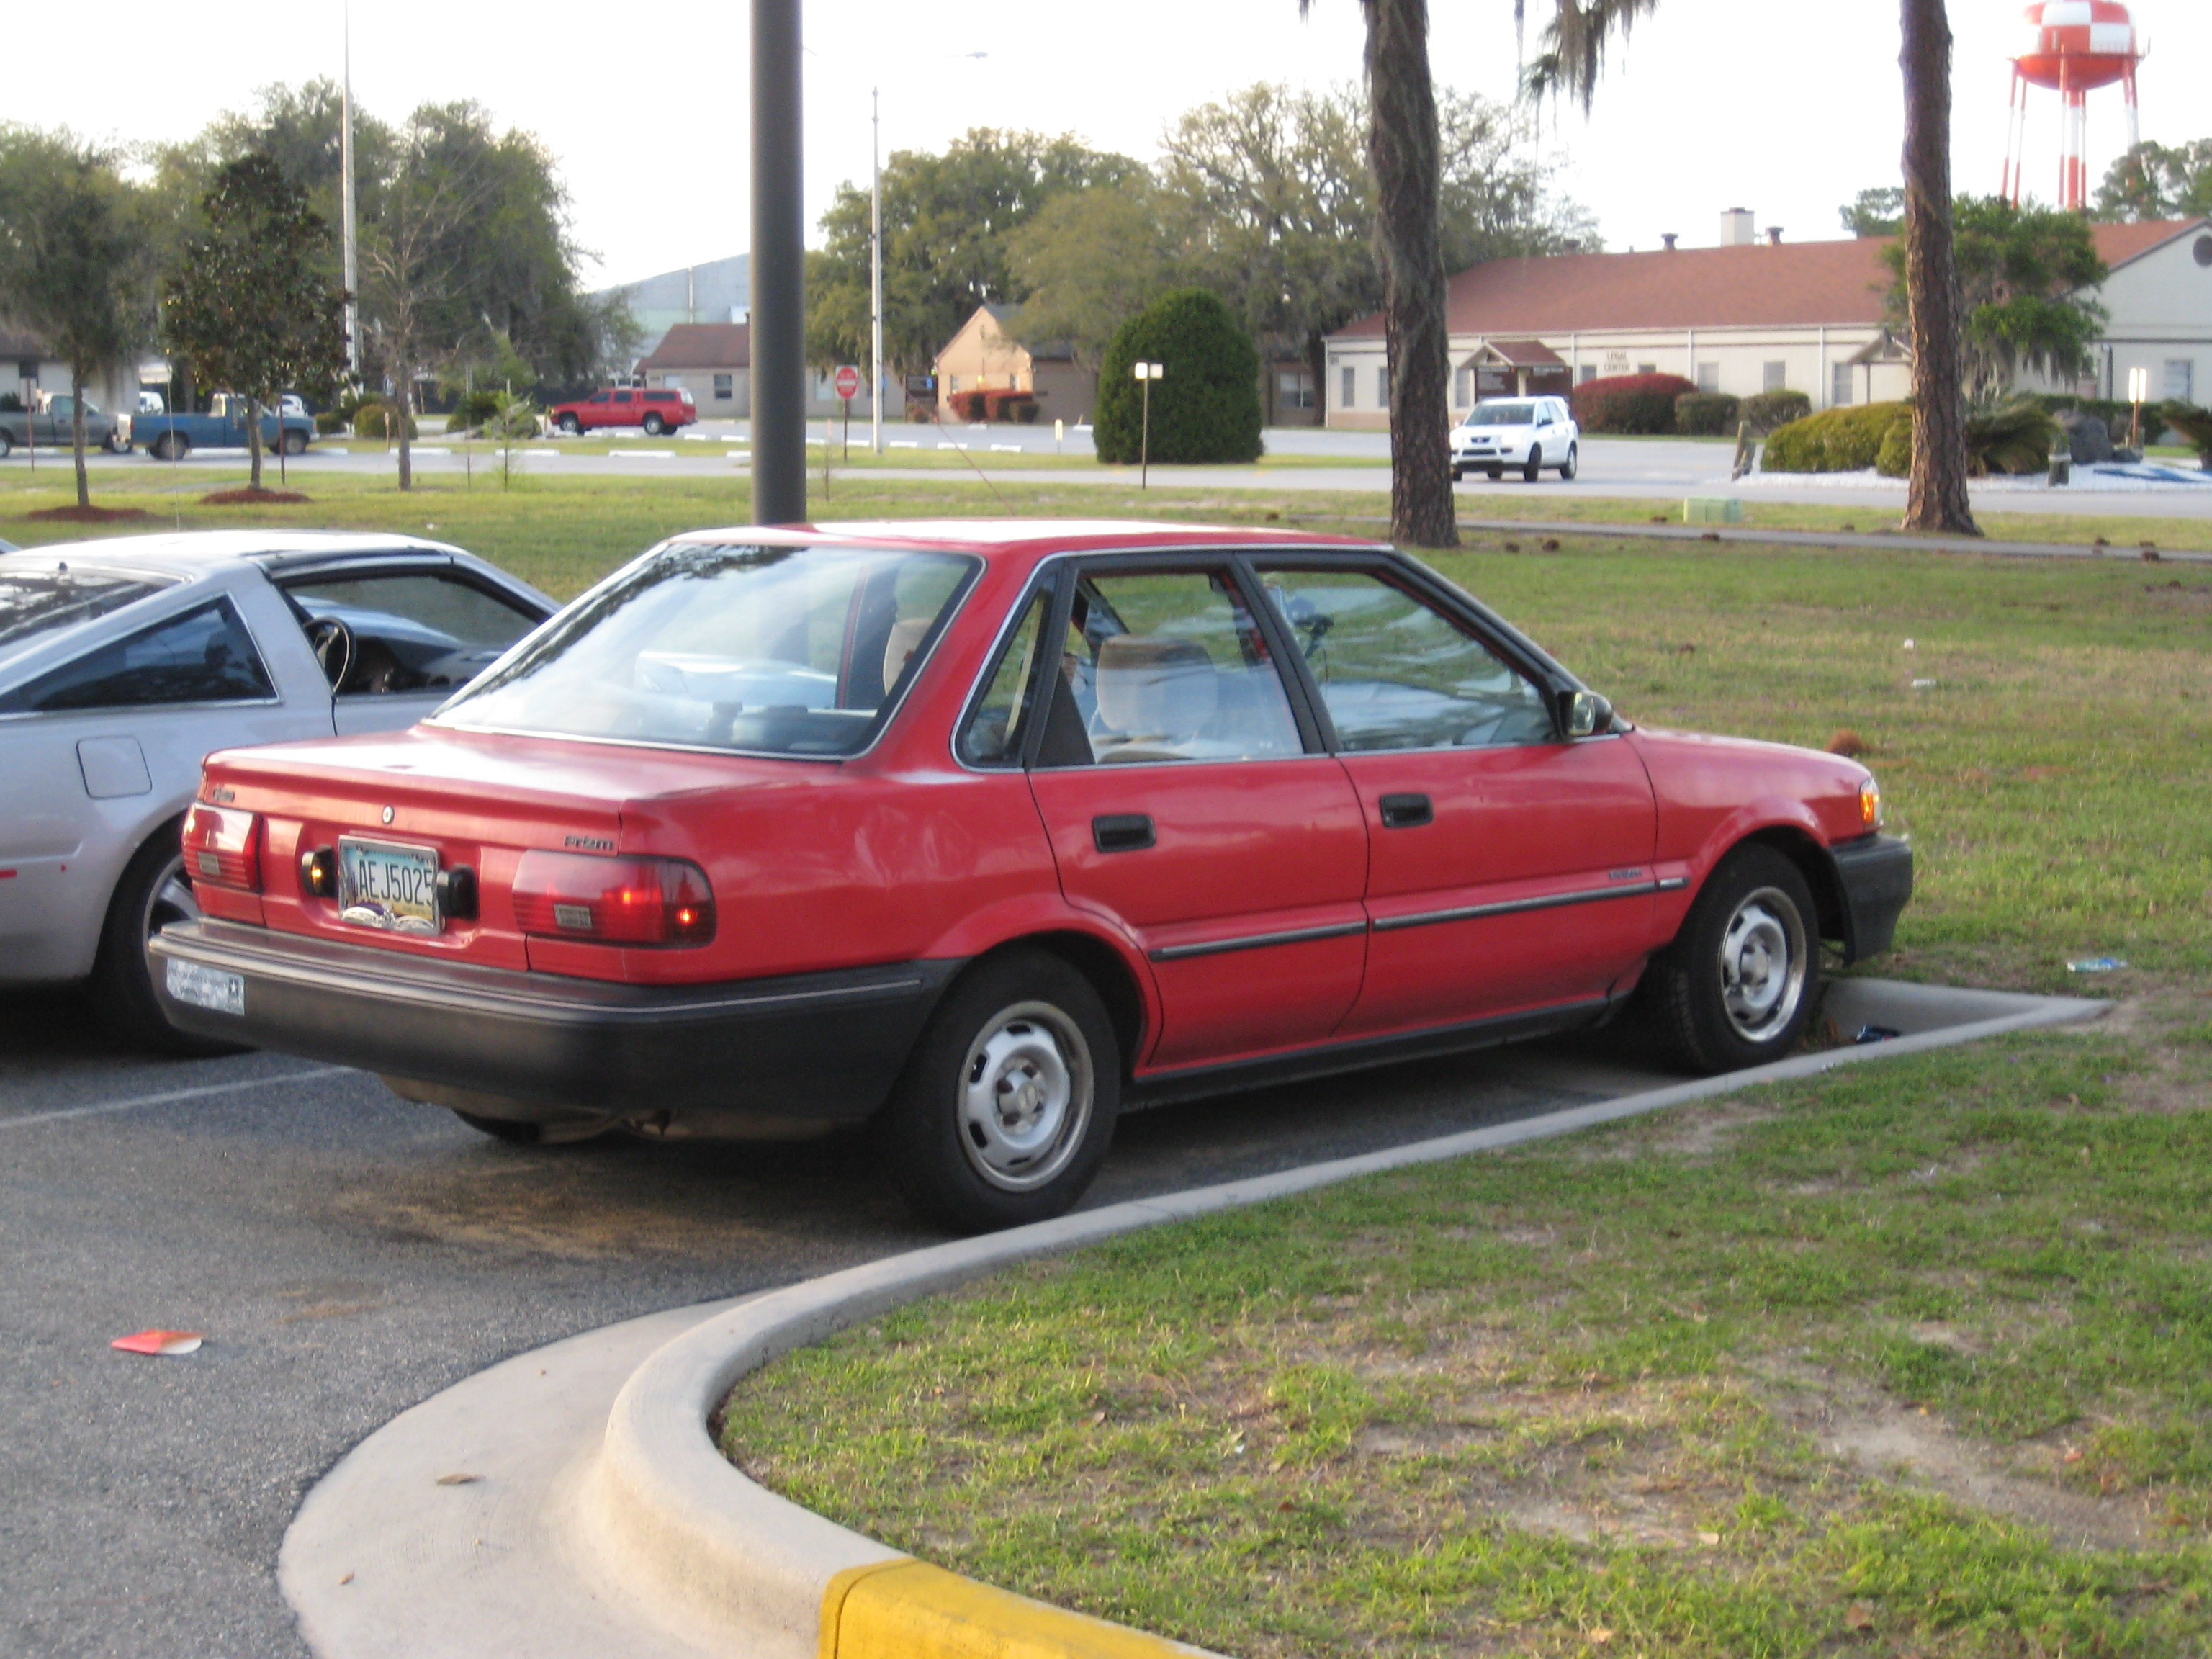 1988 Geo Prizm l0Sz2XQlvzllipuLwjkmEqxB3ejrvqBx012bQMrKKqQ also Metro in addition Geo Prizm Light Kit likewise My Japan Pics Iv Old School Bosozoku Weird Van Meet Daikoku Yokohama 56k Make Sandwich 847741 further Showthread. on geo prizm ricer